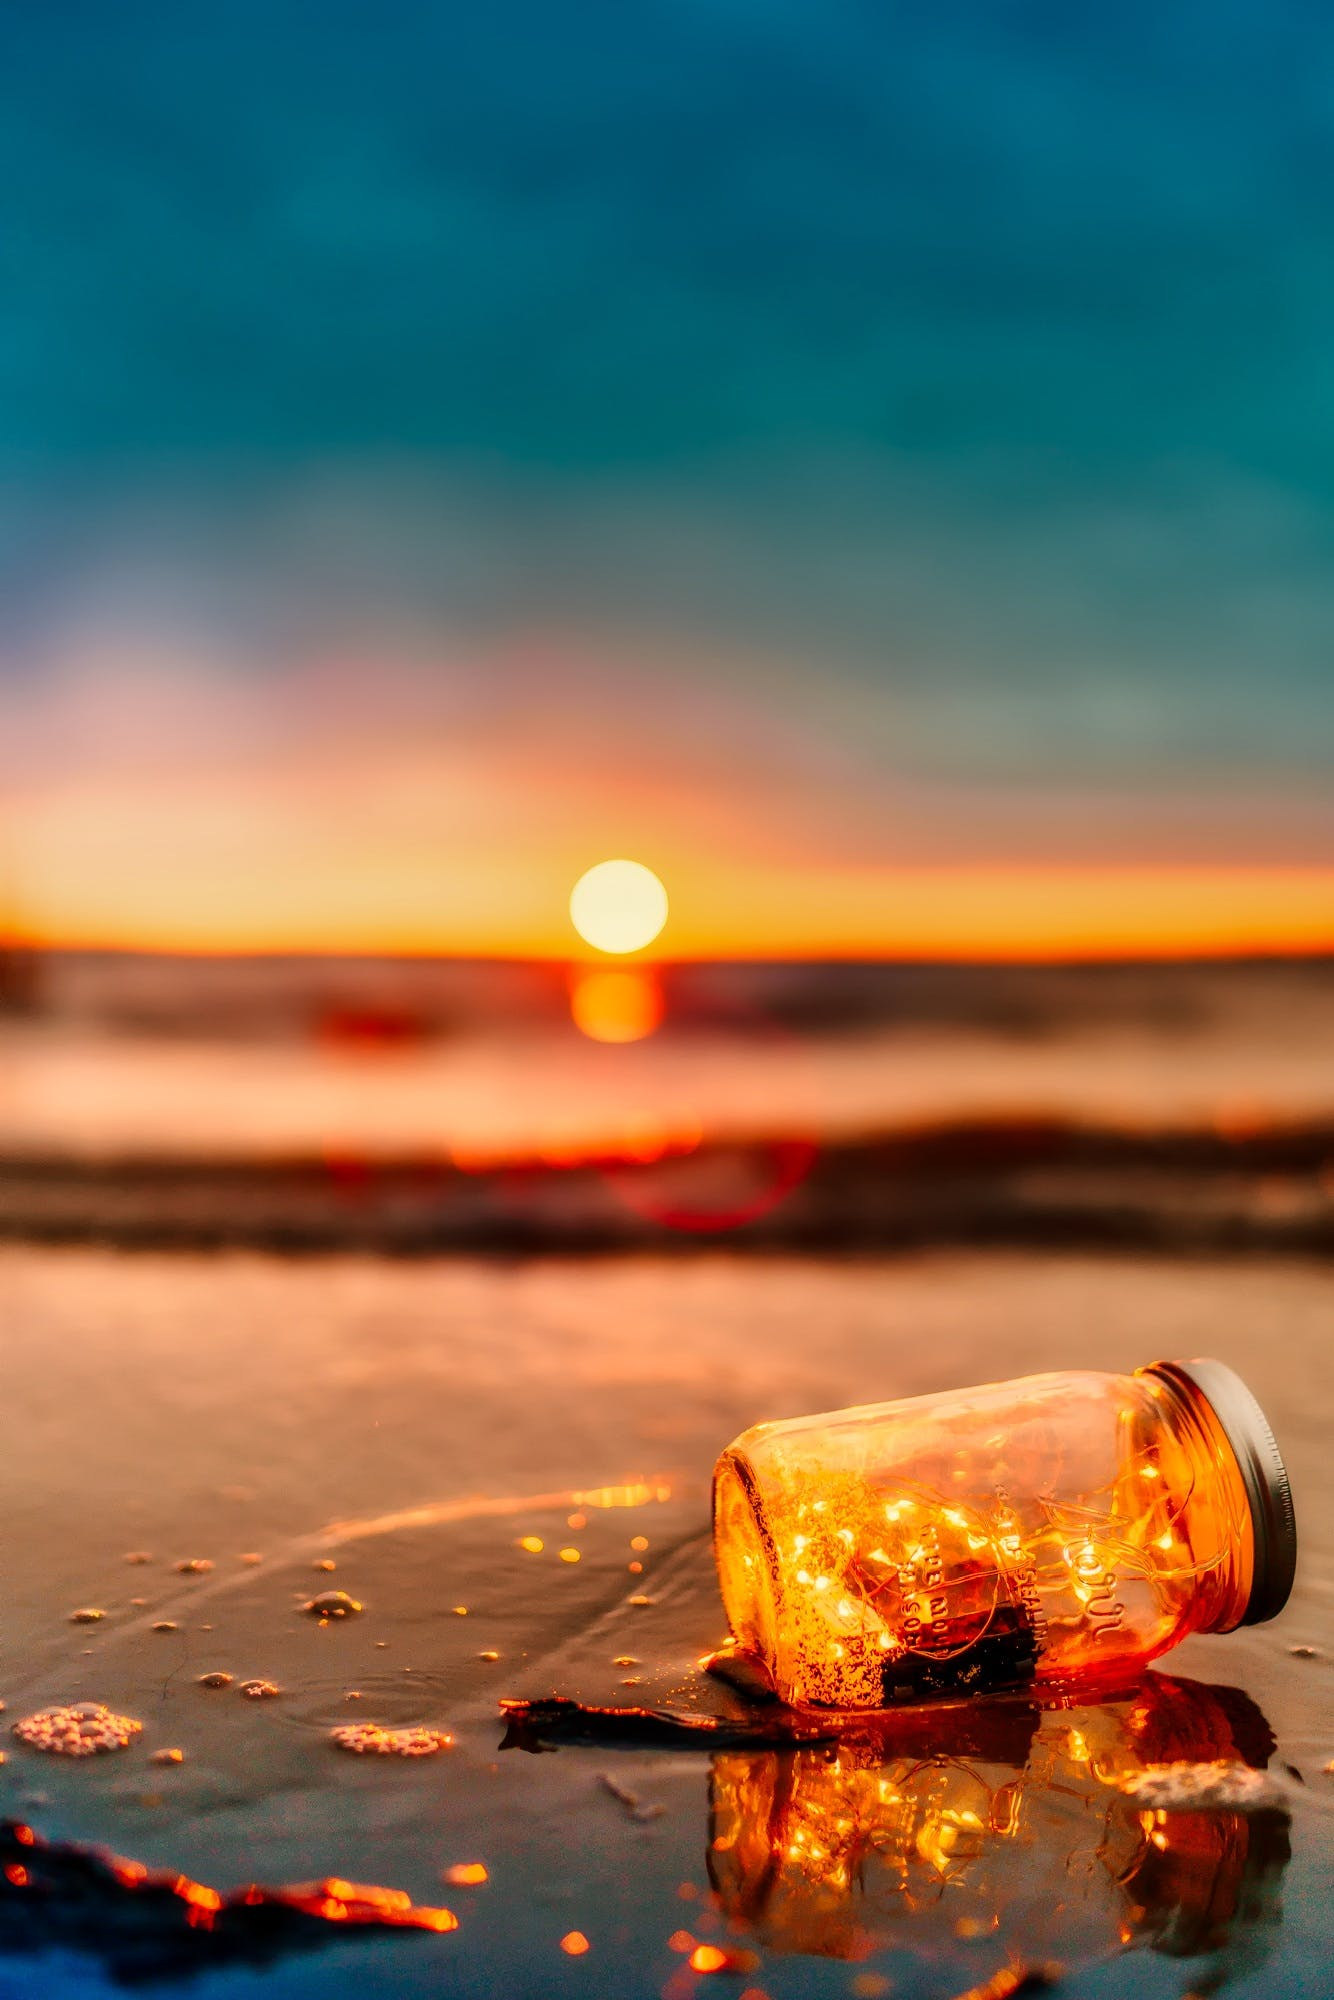 Orange Mason Jar in Body of Water